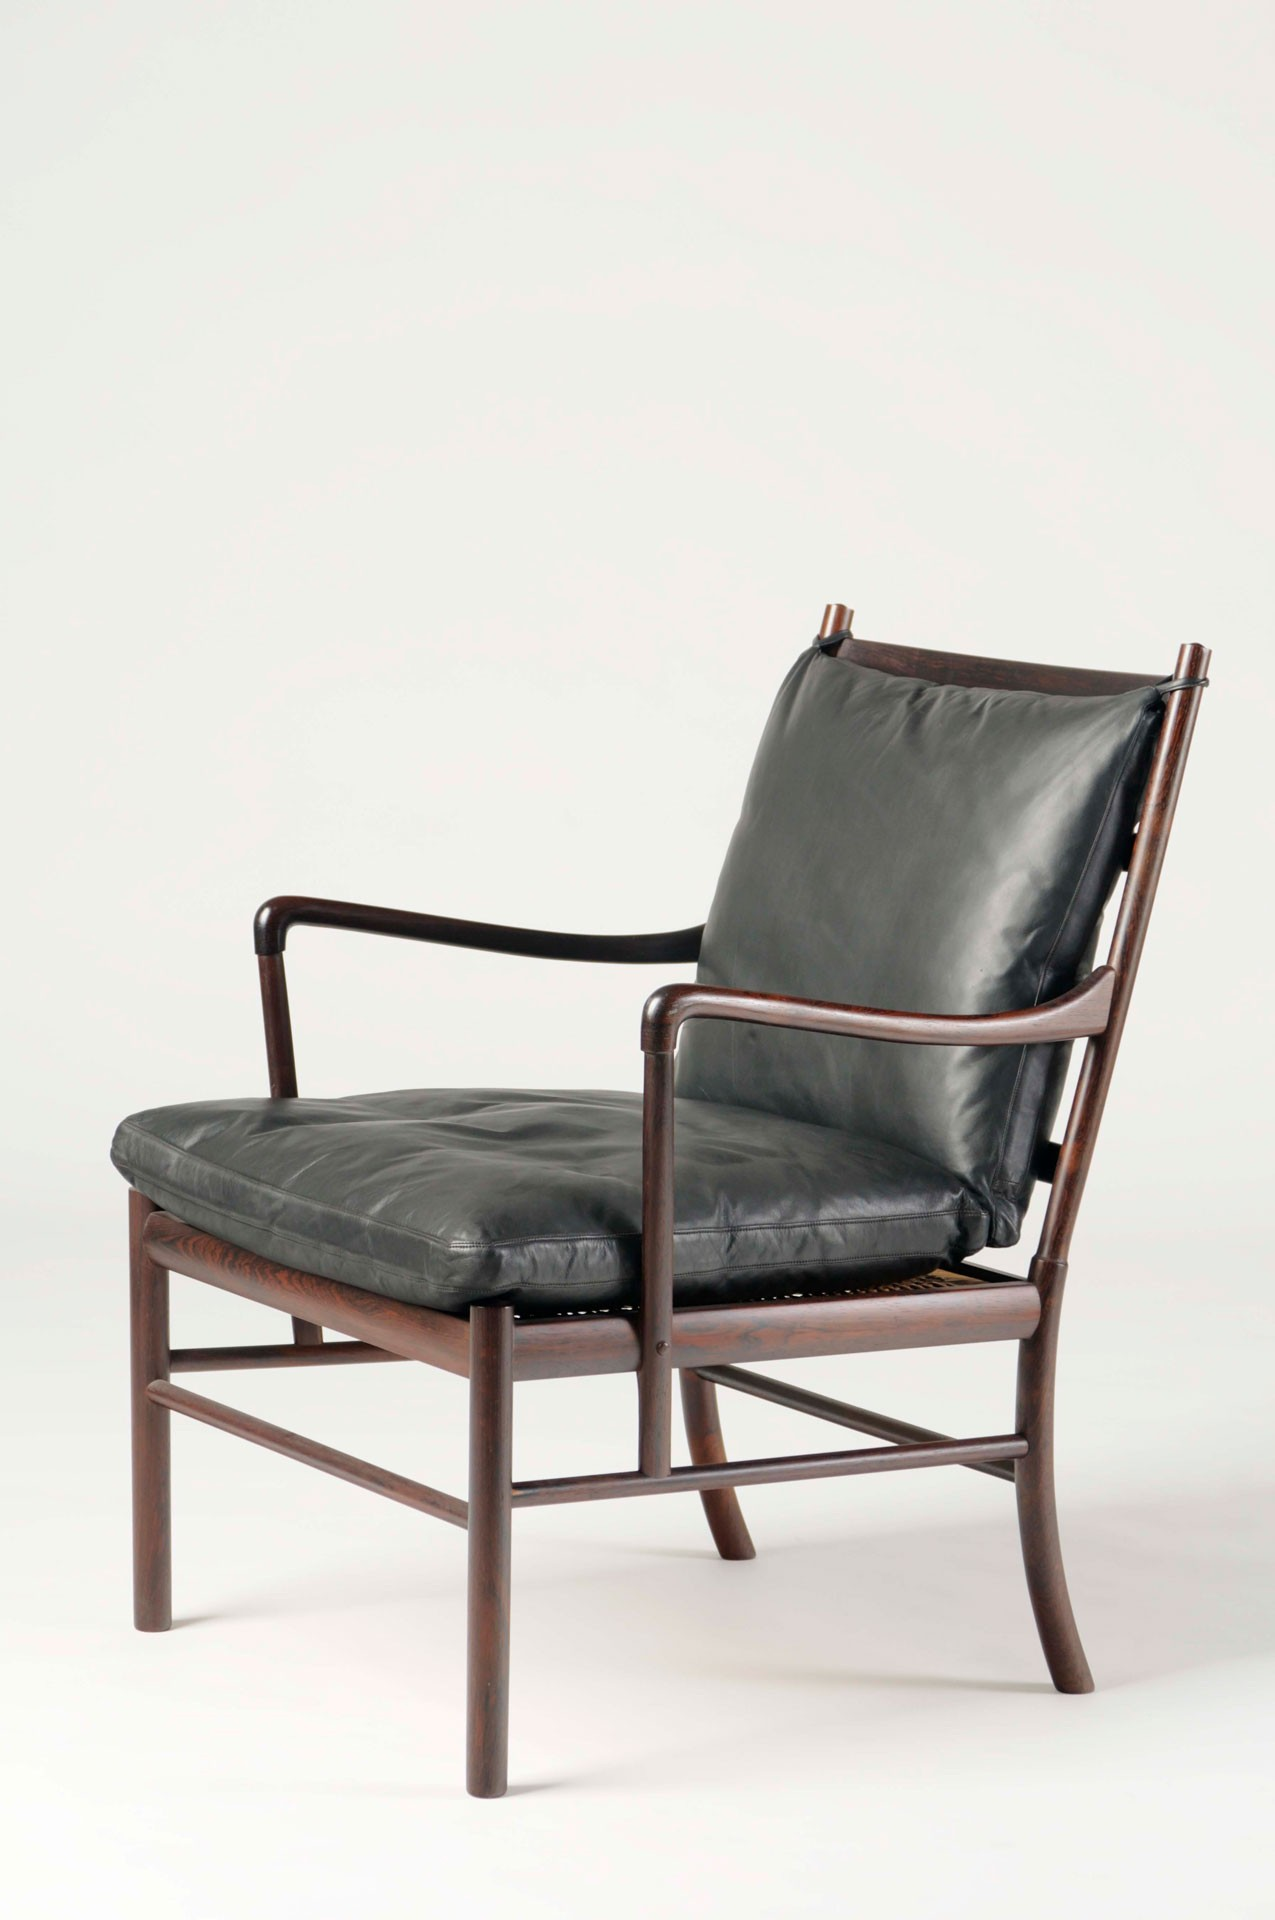 <BODY>Ole Wanscher, Armchair, Model No. PJ 149, Copenhagen, 1949<br />Rosewood, solid; wickerwork (rattan); upholstery with leather cover<br />© MAK/Nathan Murrell</BODY>